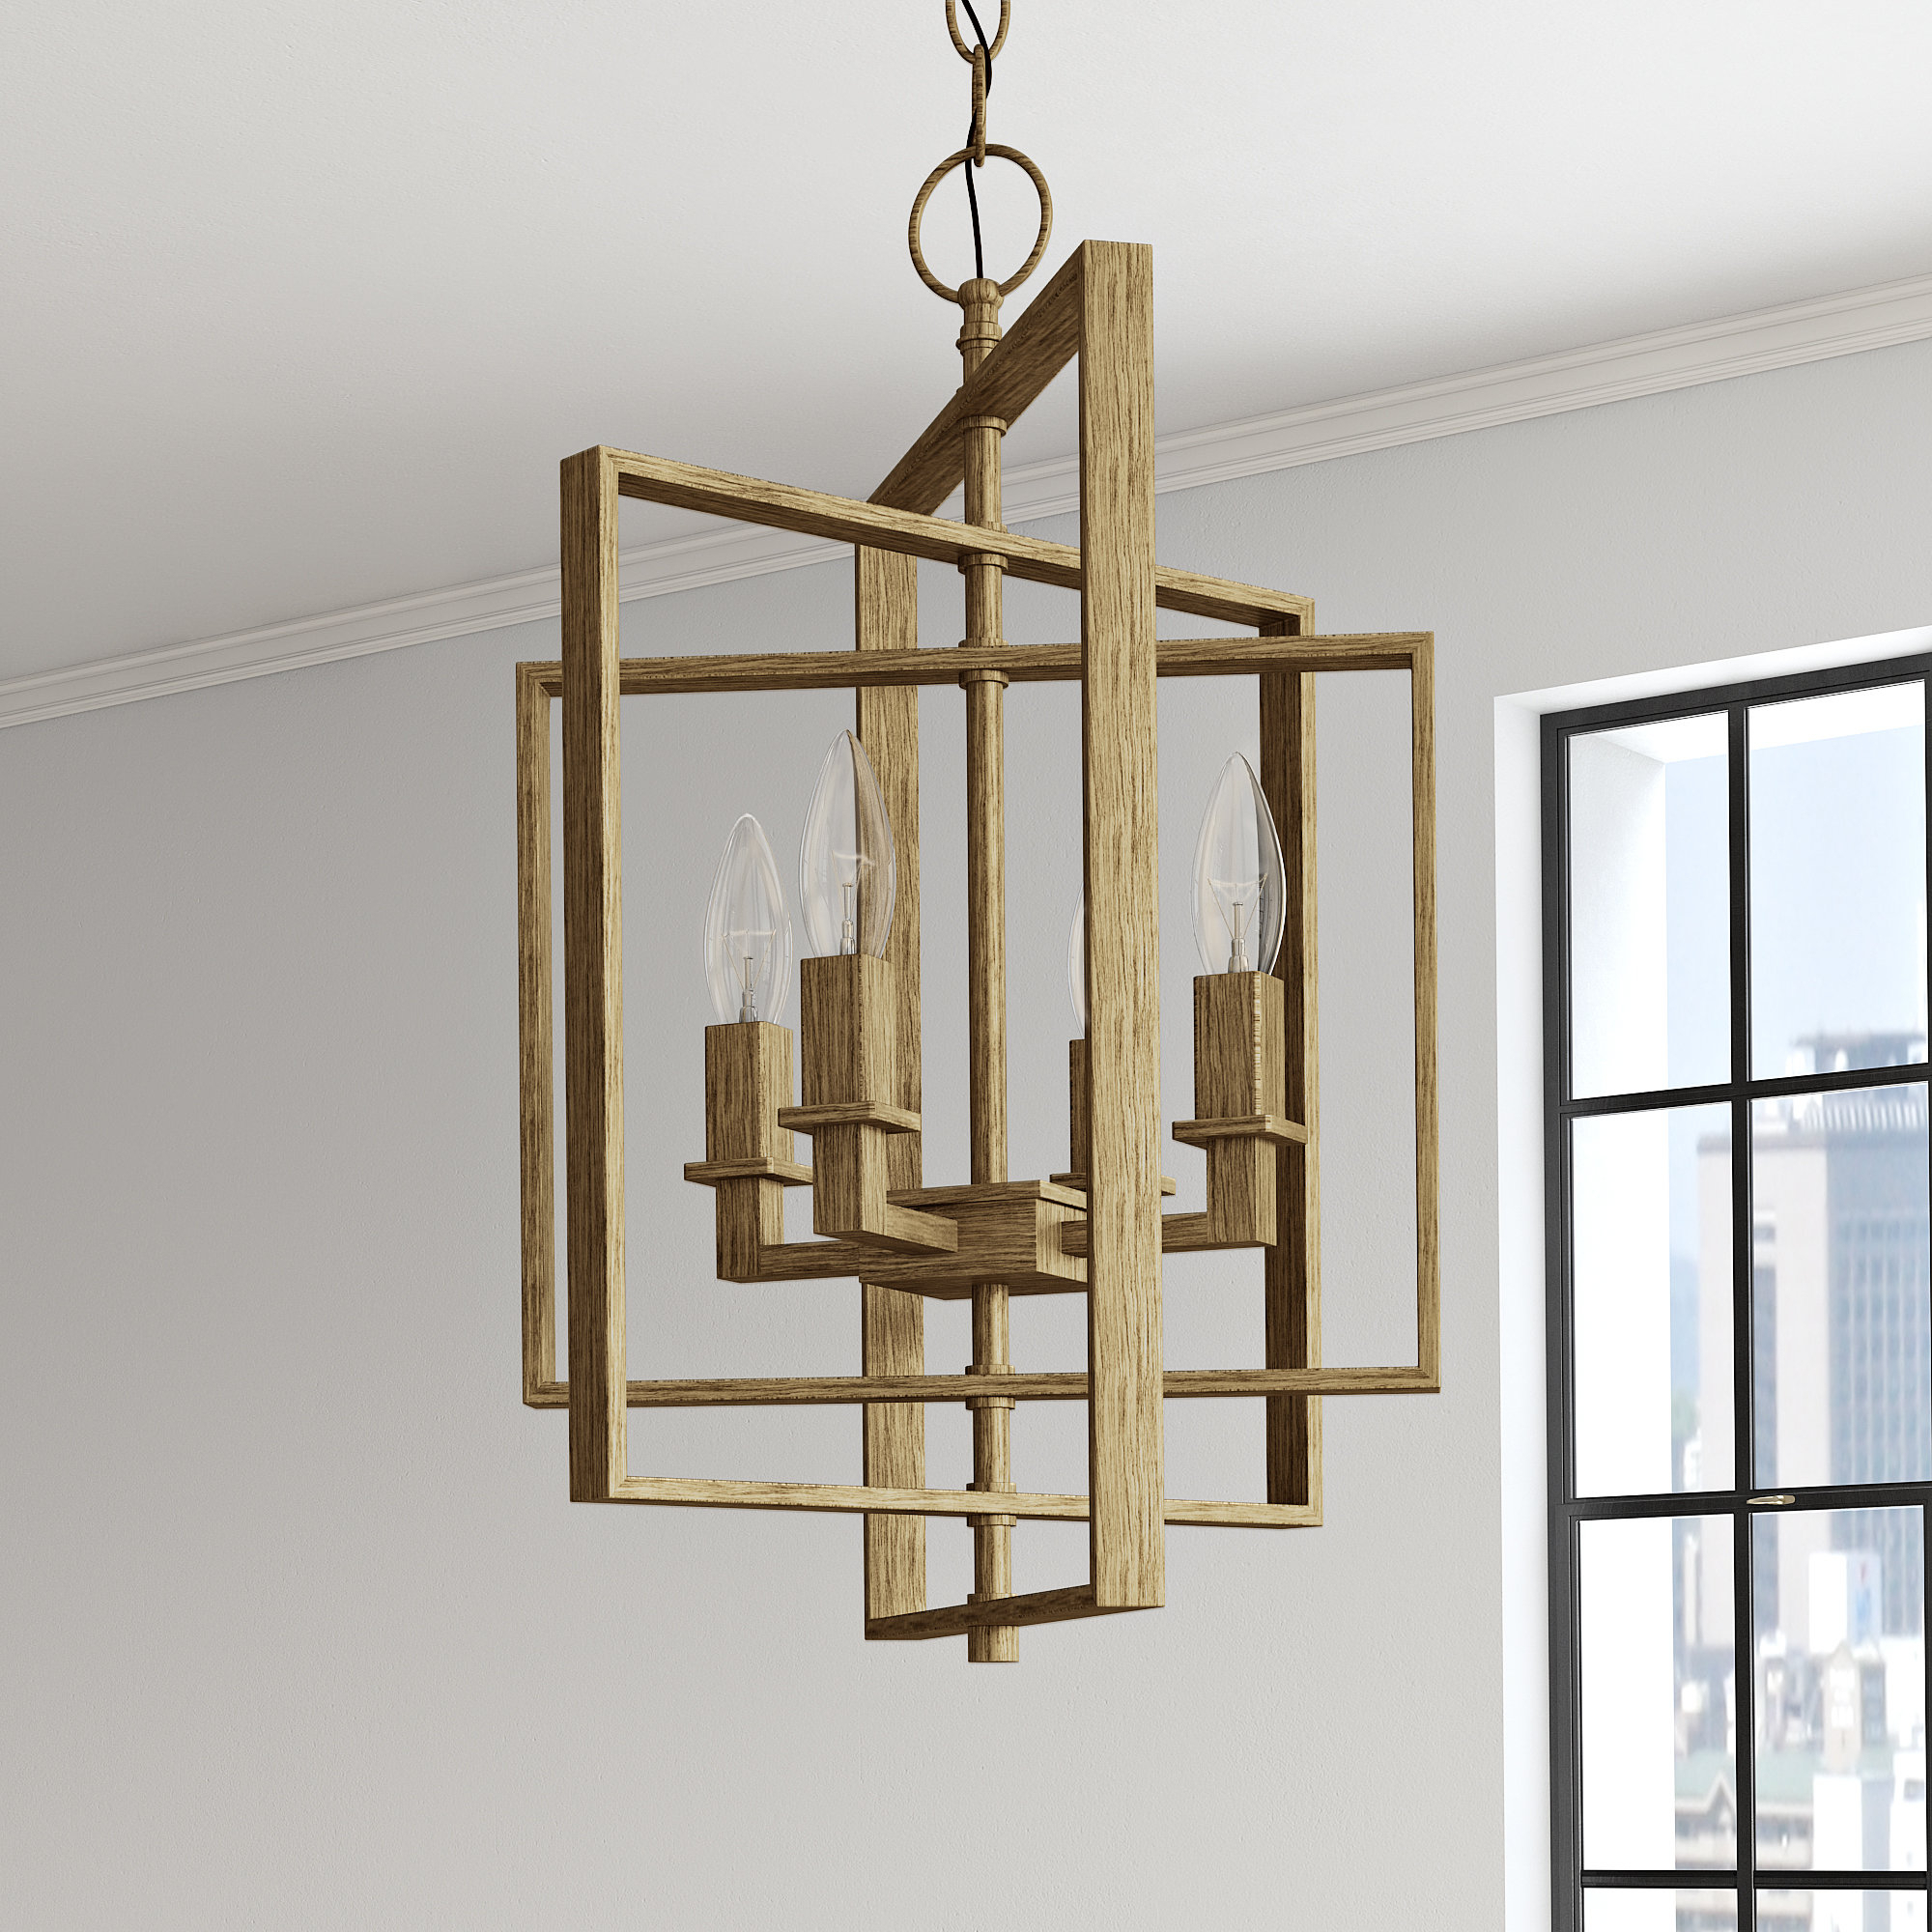 2019 Yarnell 4 Light Square/rectangle Chandelier Within Tiana 4 Light Geometric Chandeliers (View 4 of 20)